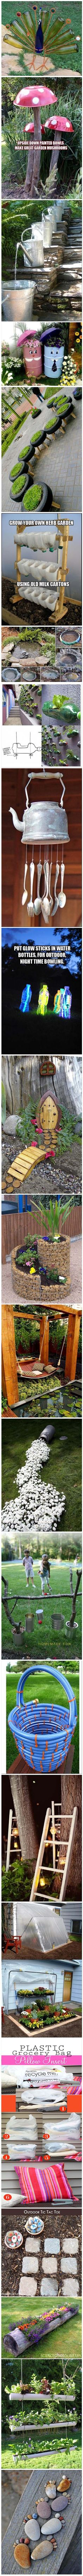 Simple outdoor ideas that are incredibly creative.